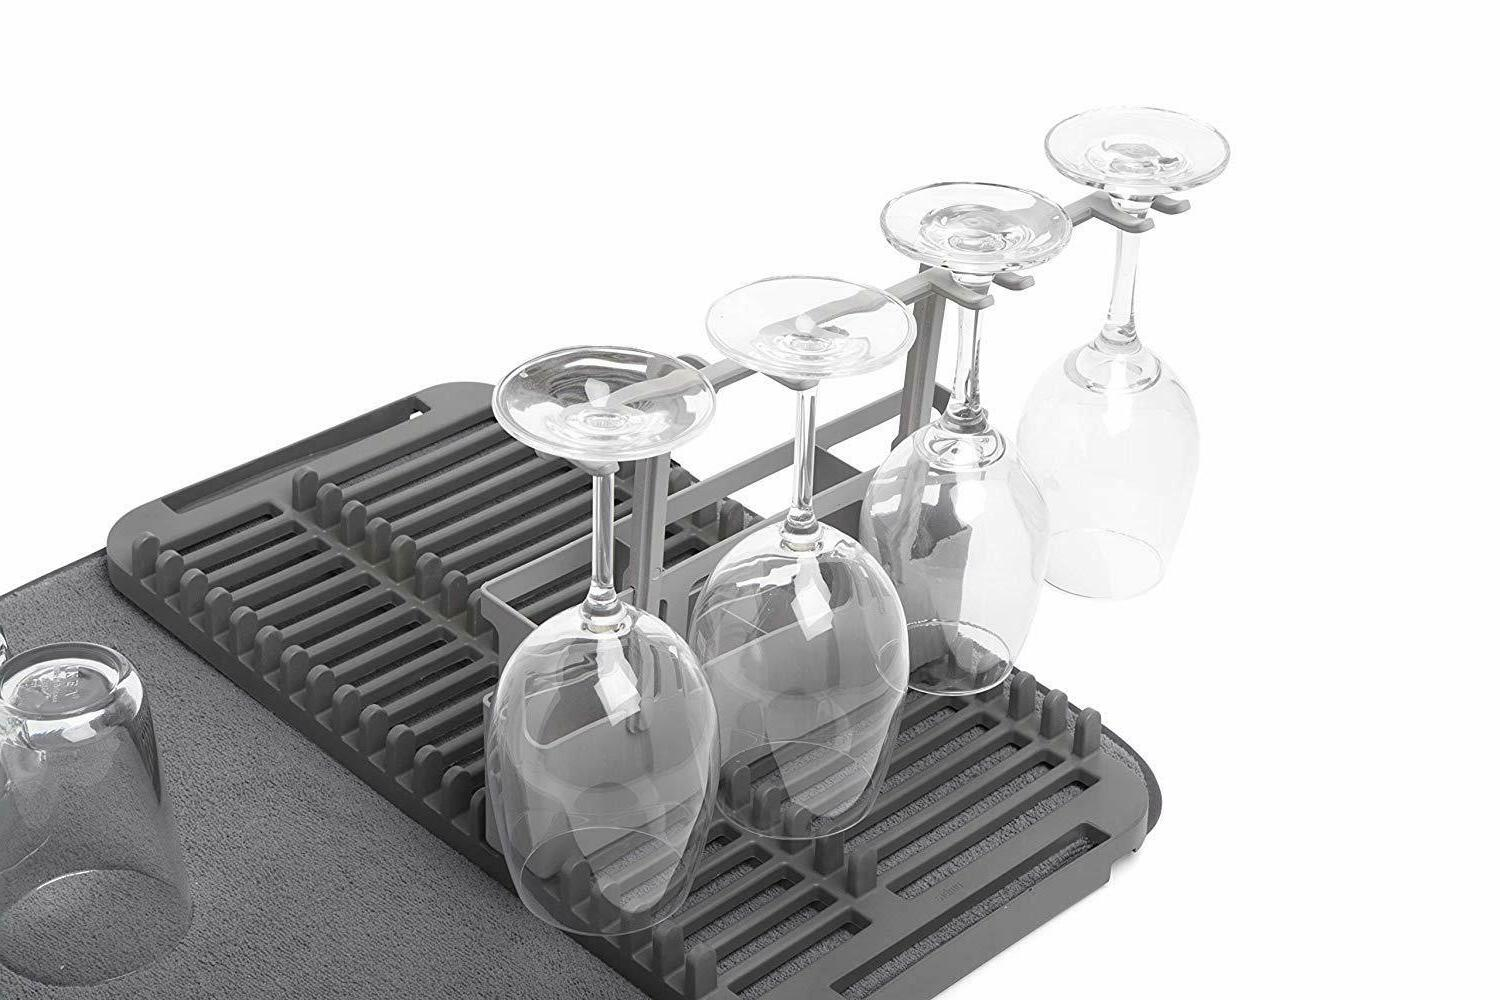 Drying and microfiber placemat with goblet and caddy